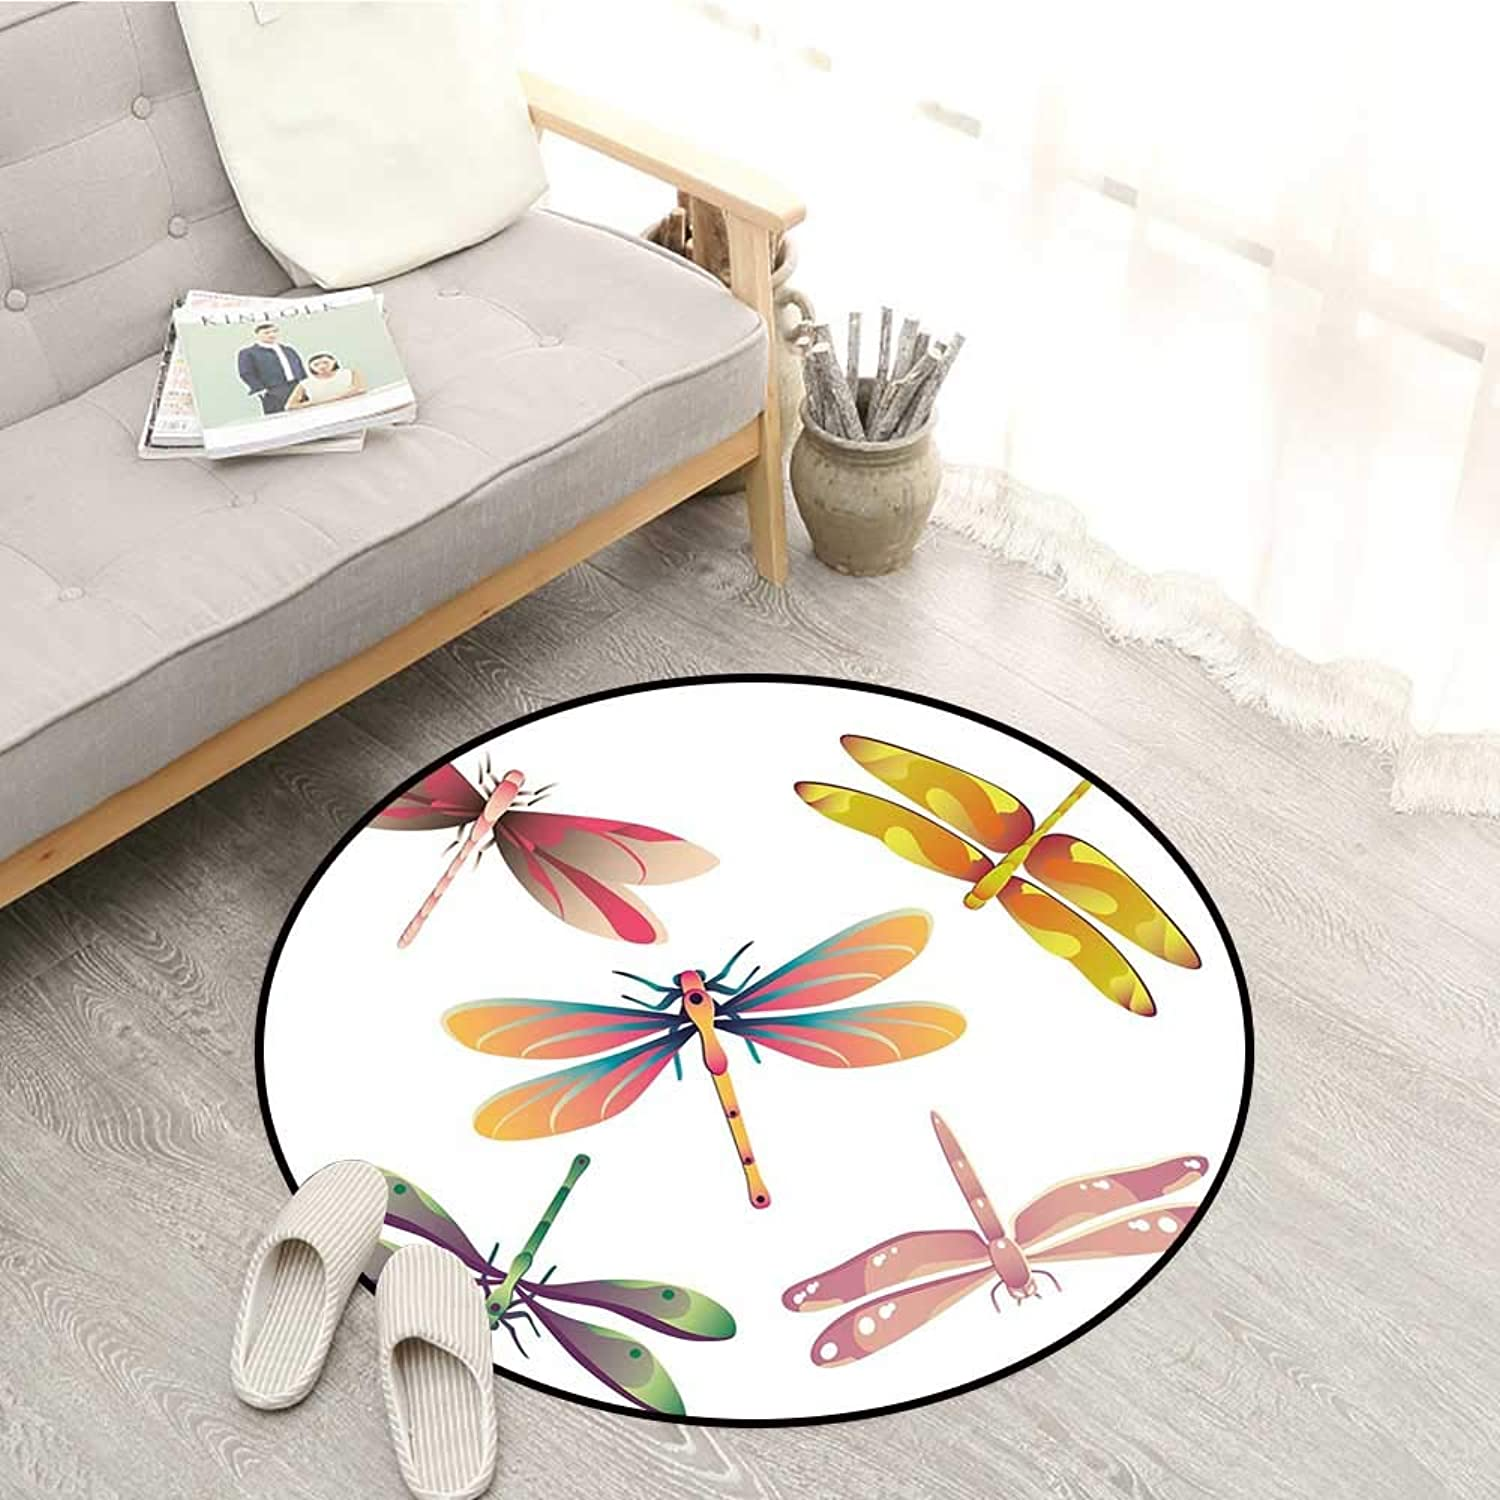 Dragonfly Living Room Round Rugs Five Spiritual Bugs in Modern Abstract Patterned Beauty Elegance Artsy Motif Sofa Coffee Table Mat 4'11  Multicolor